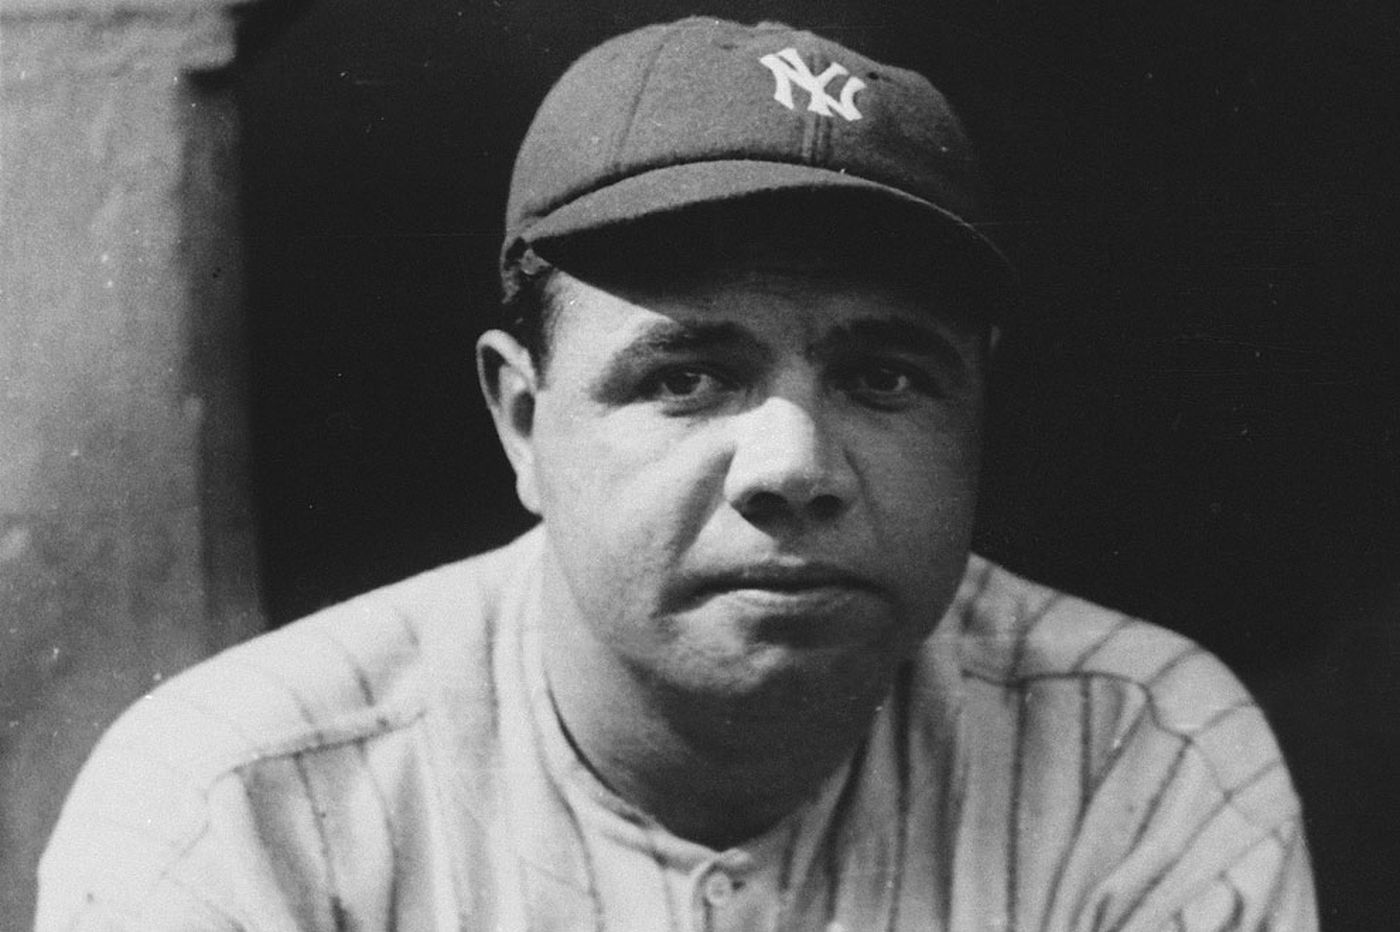 Babe Ruth's Philadelphia story burnished his incomparable baseball career